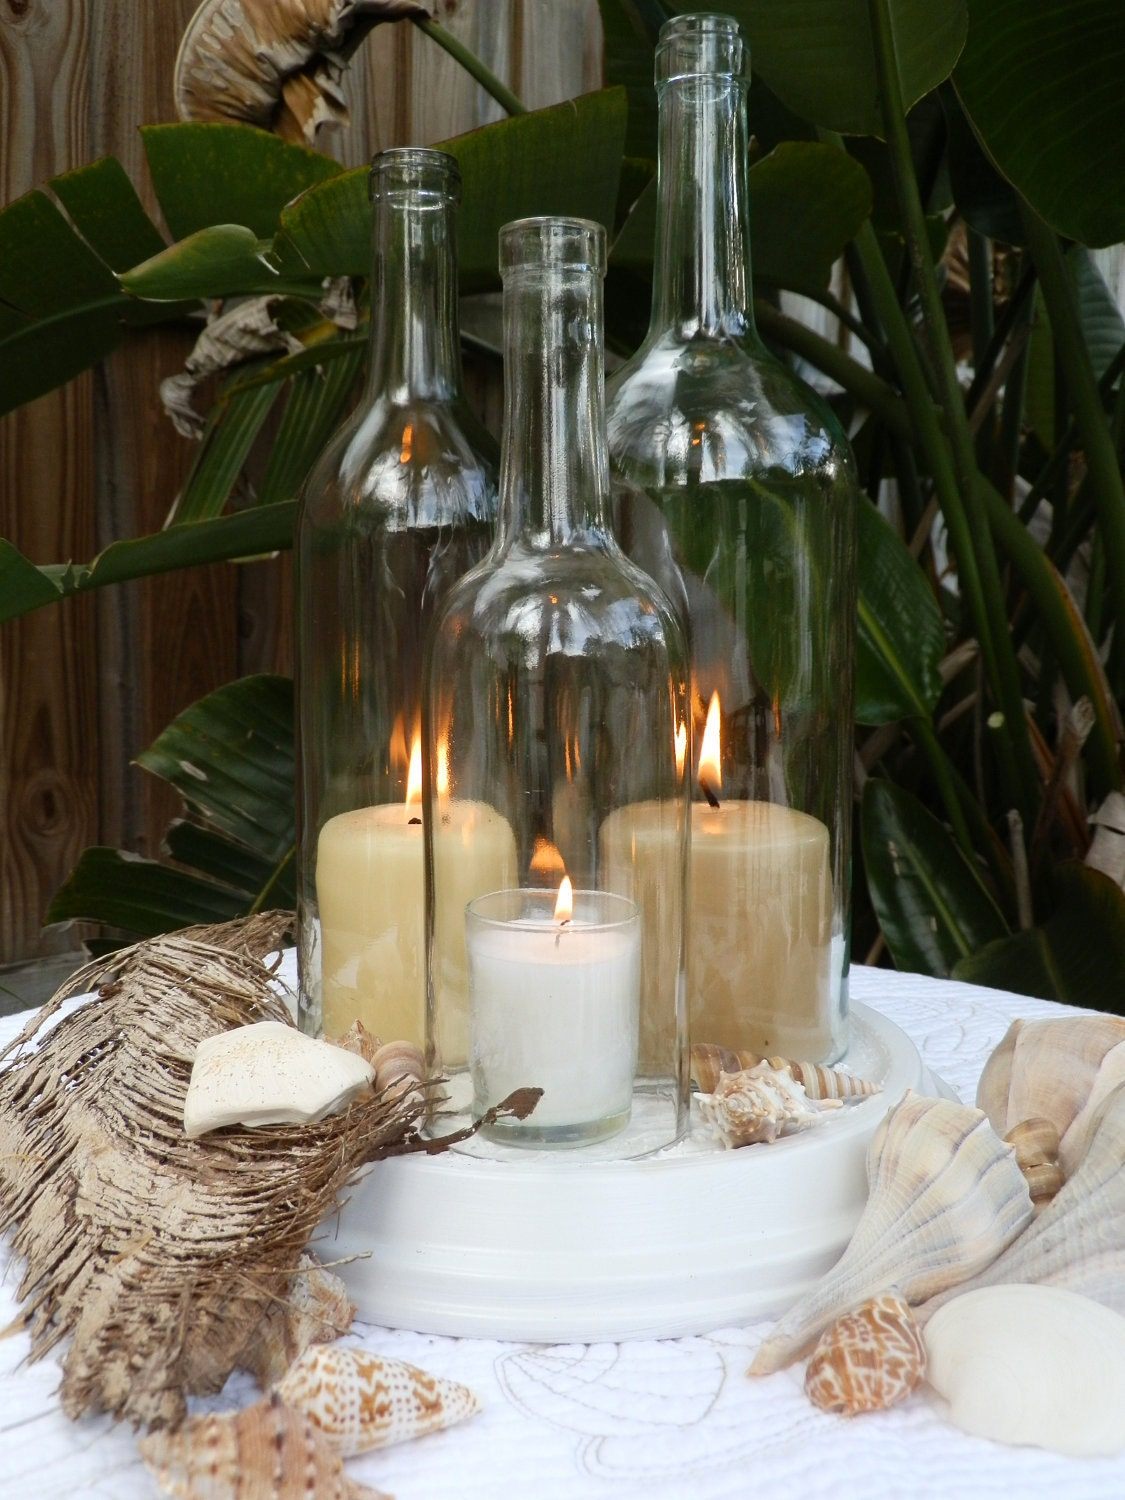 wedding centerpiece white triple wine bottle candle holder. Black Bedroom Furniture Sets. Home Design Ideas